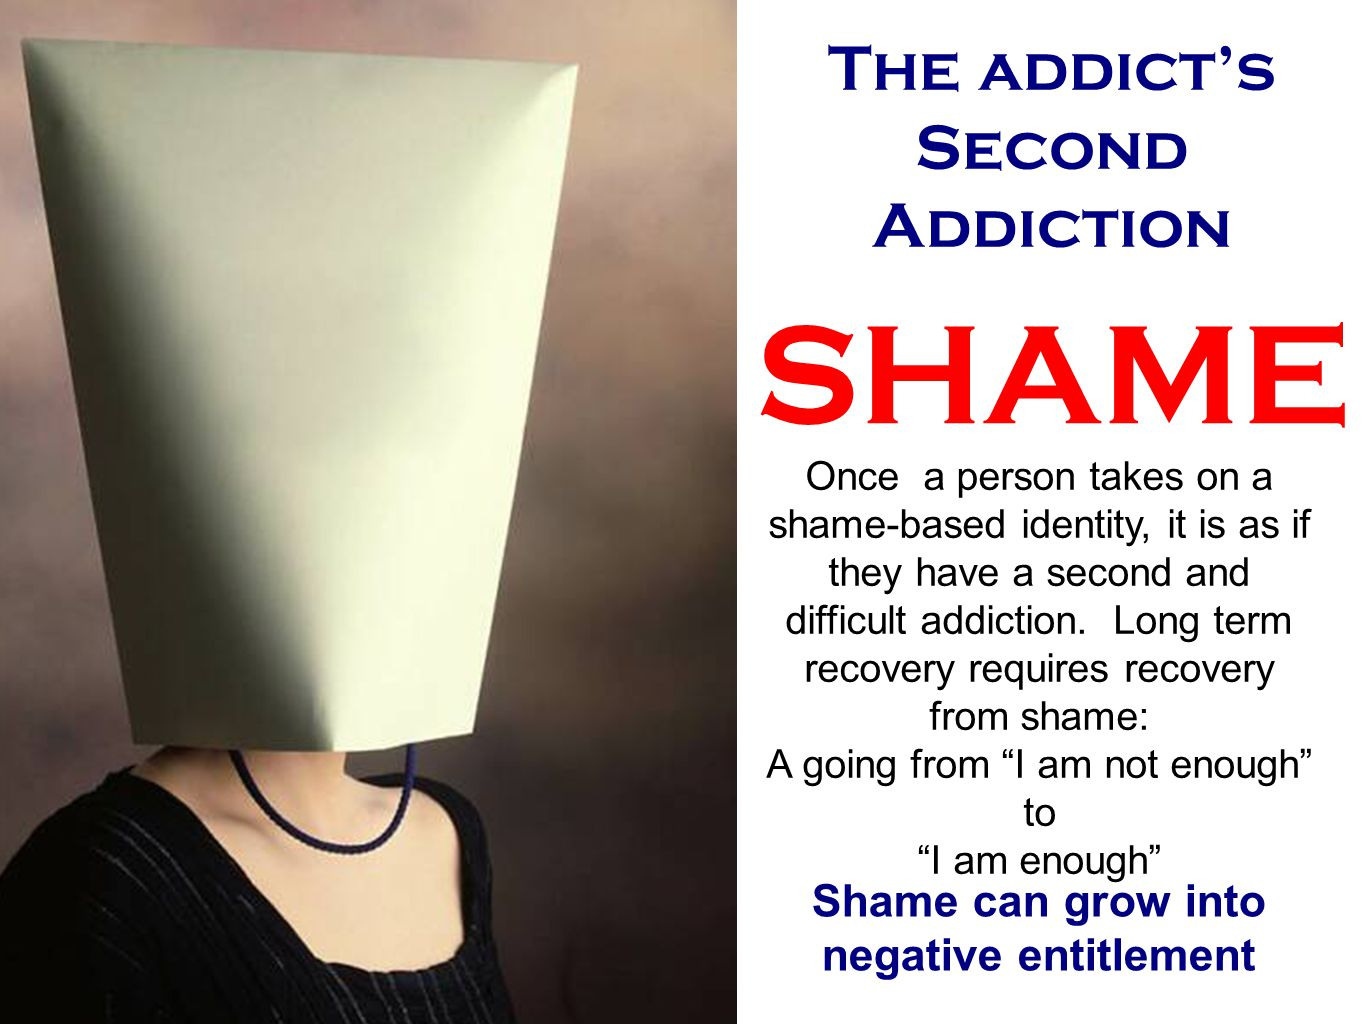 The addict's Second Addiction SHAME Once a person takes on a shame-based identity, it is as if they have a second and difficult addiction.